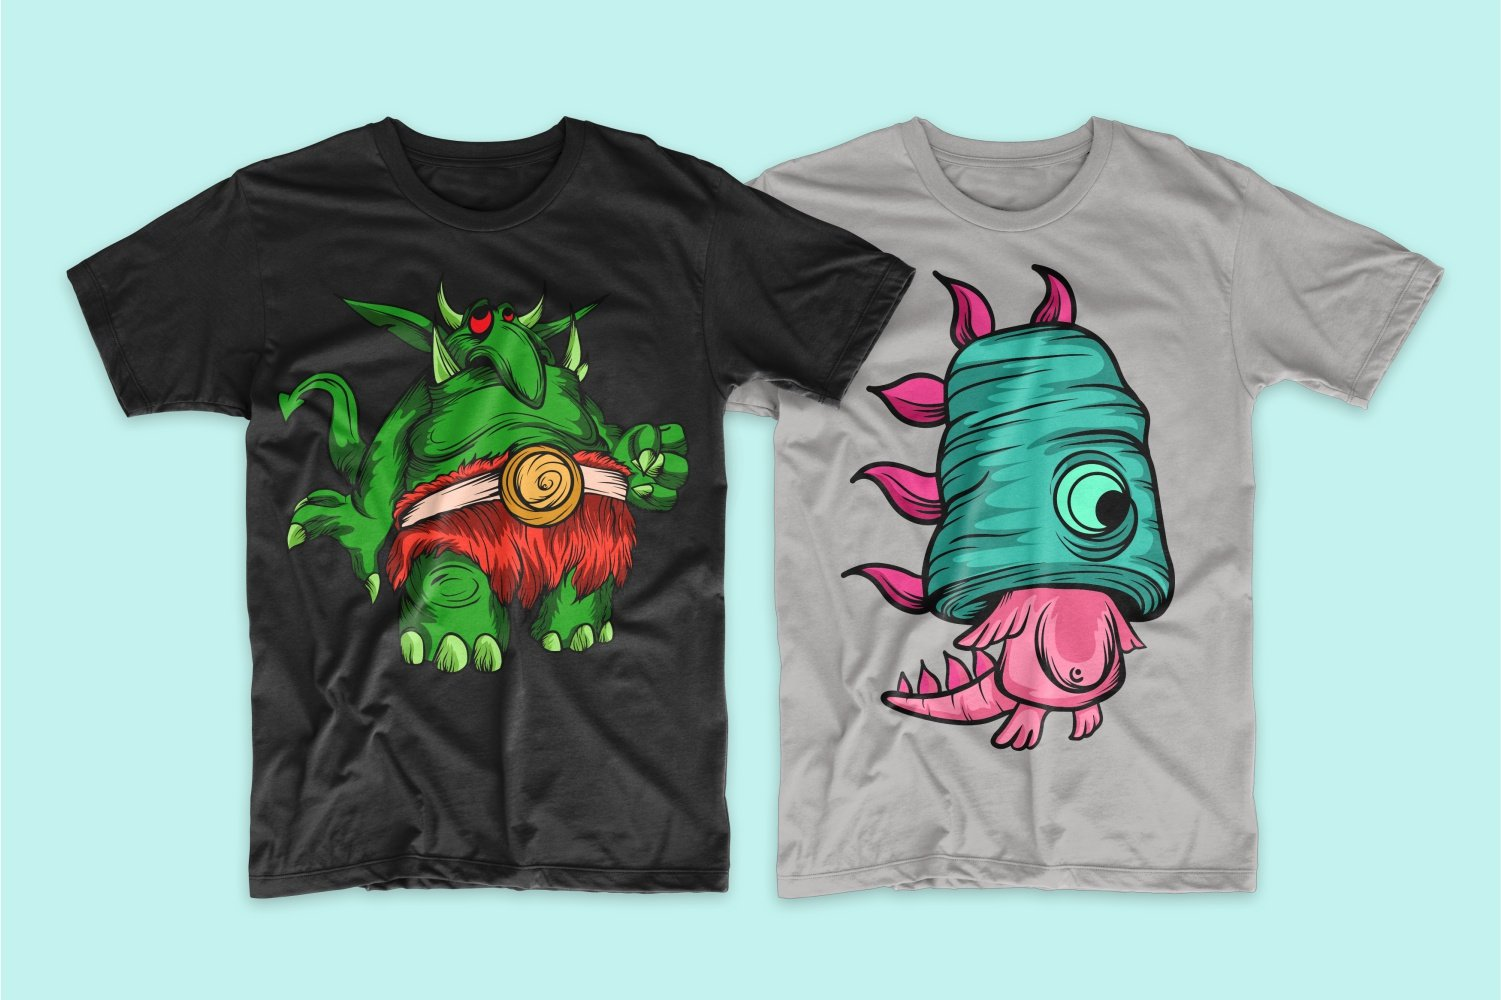 A black T-shirt with a green troll and a gray one with a rectangular head with a pink monster.